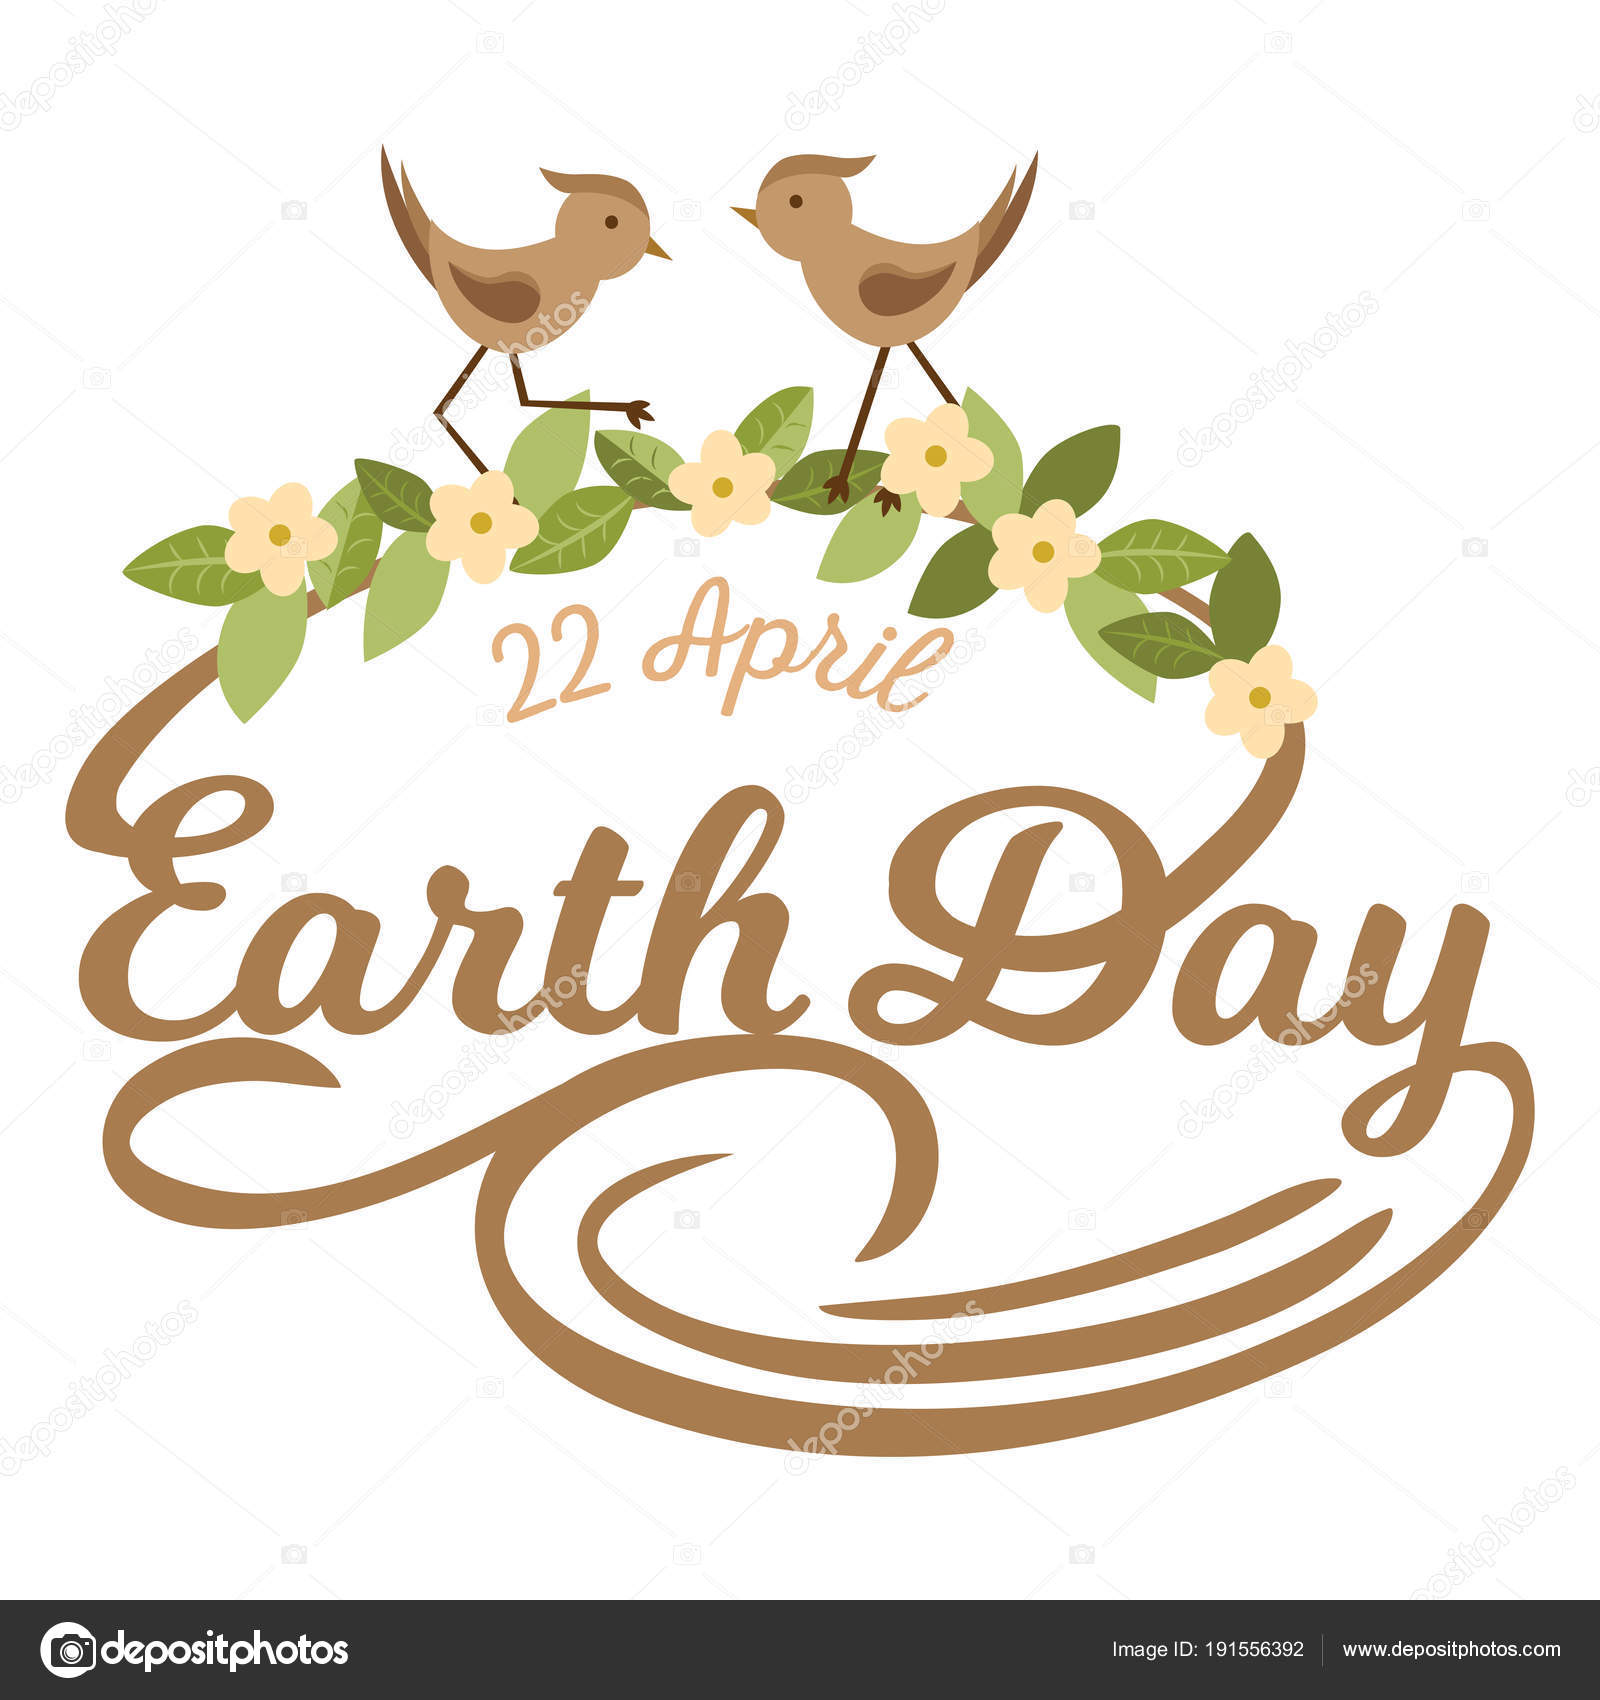 April 22 world earth day logotypes set for greeting cards or banner april 22 world earth day logotypes set for greeting cards or banner with text and fonts lettering in retro hipster style vector illustration m4hsunfo